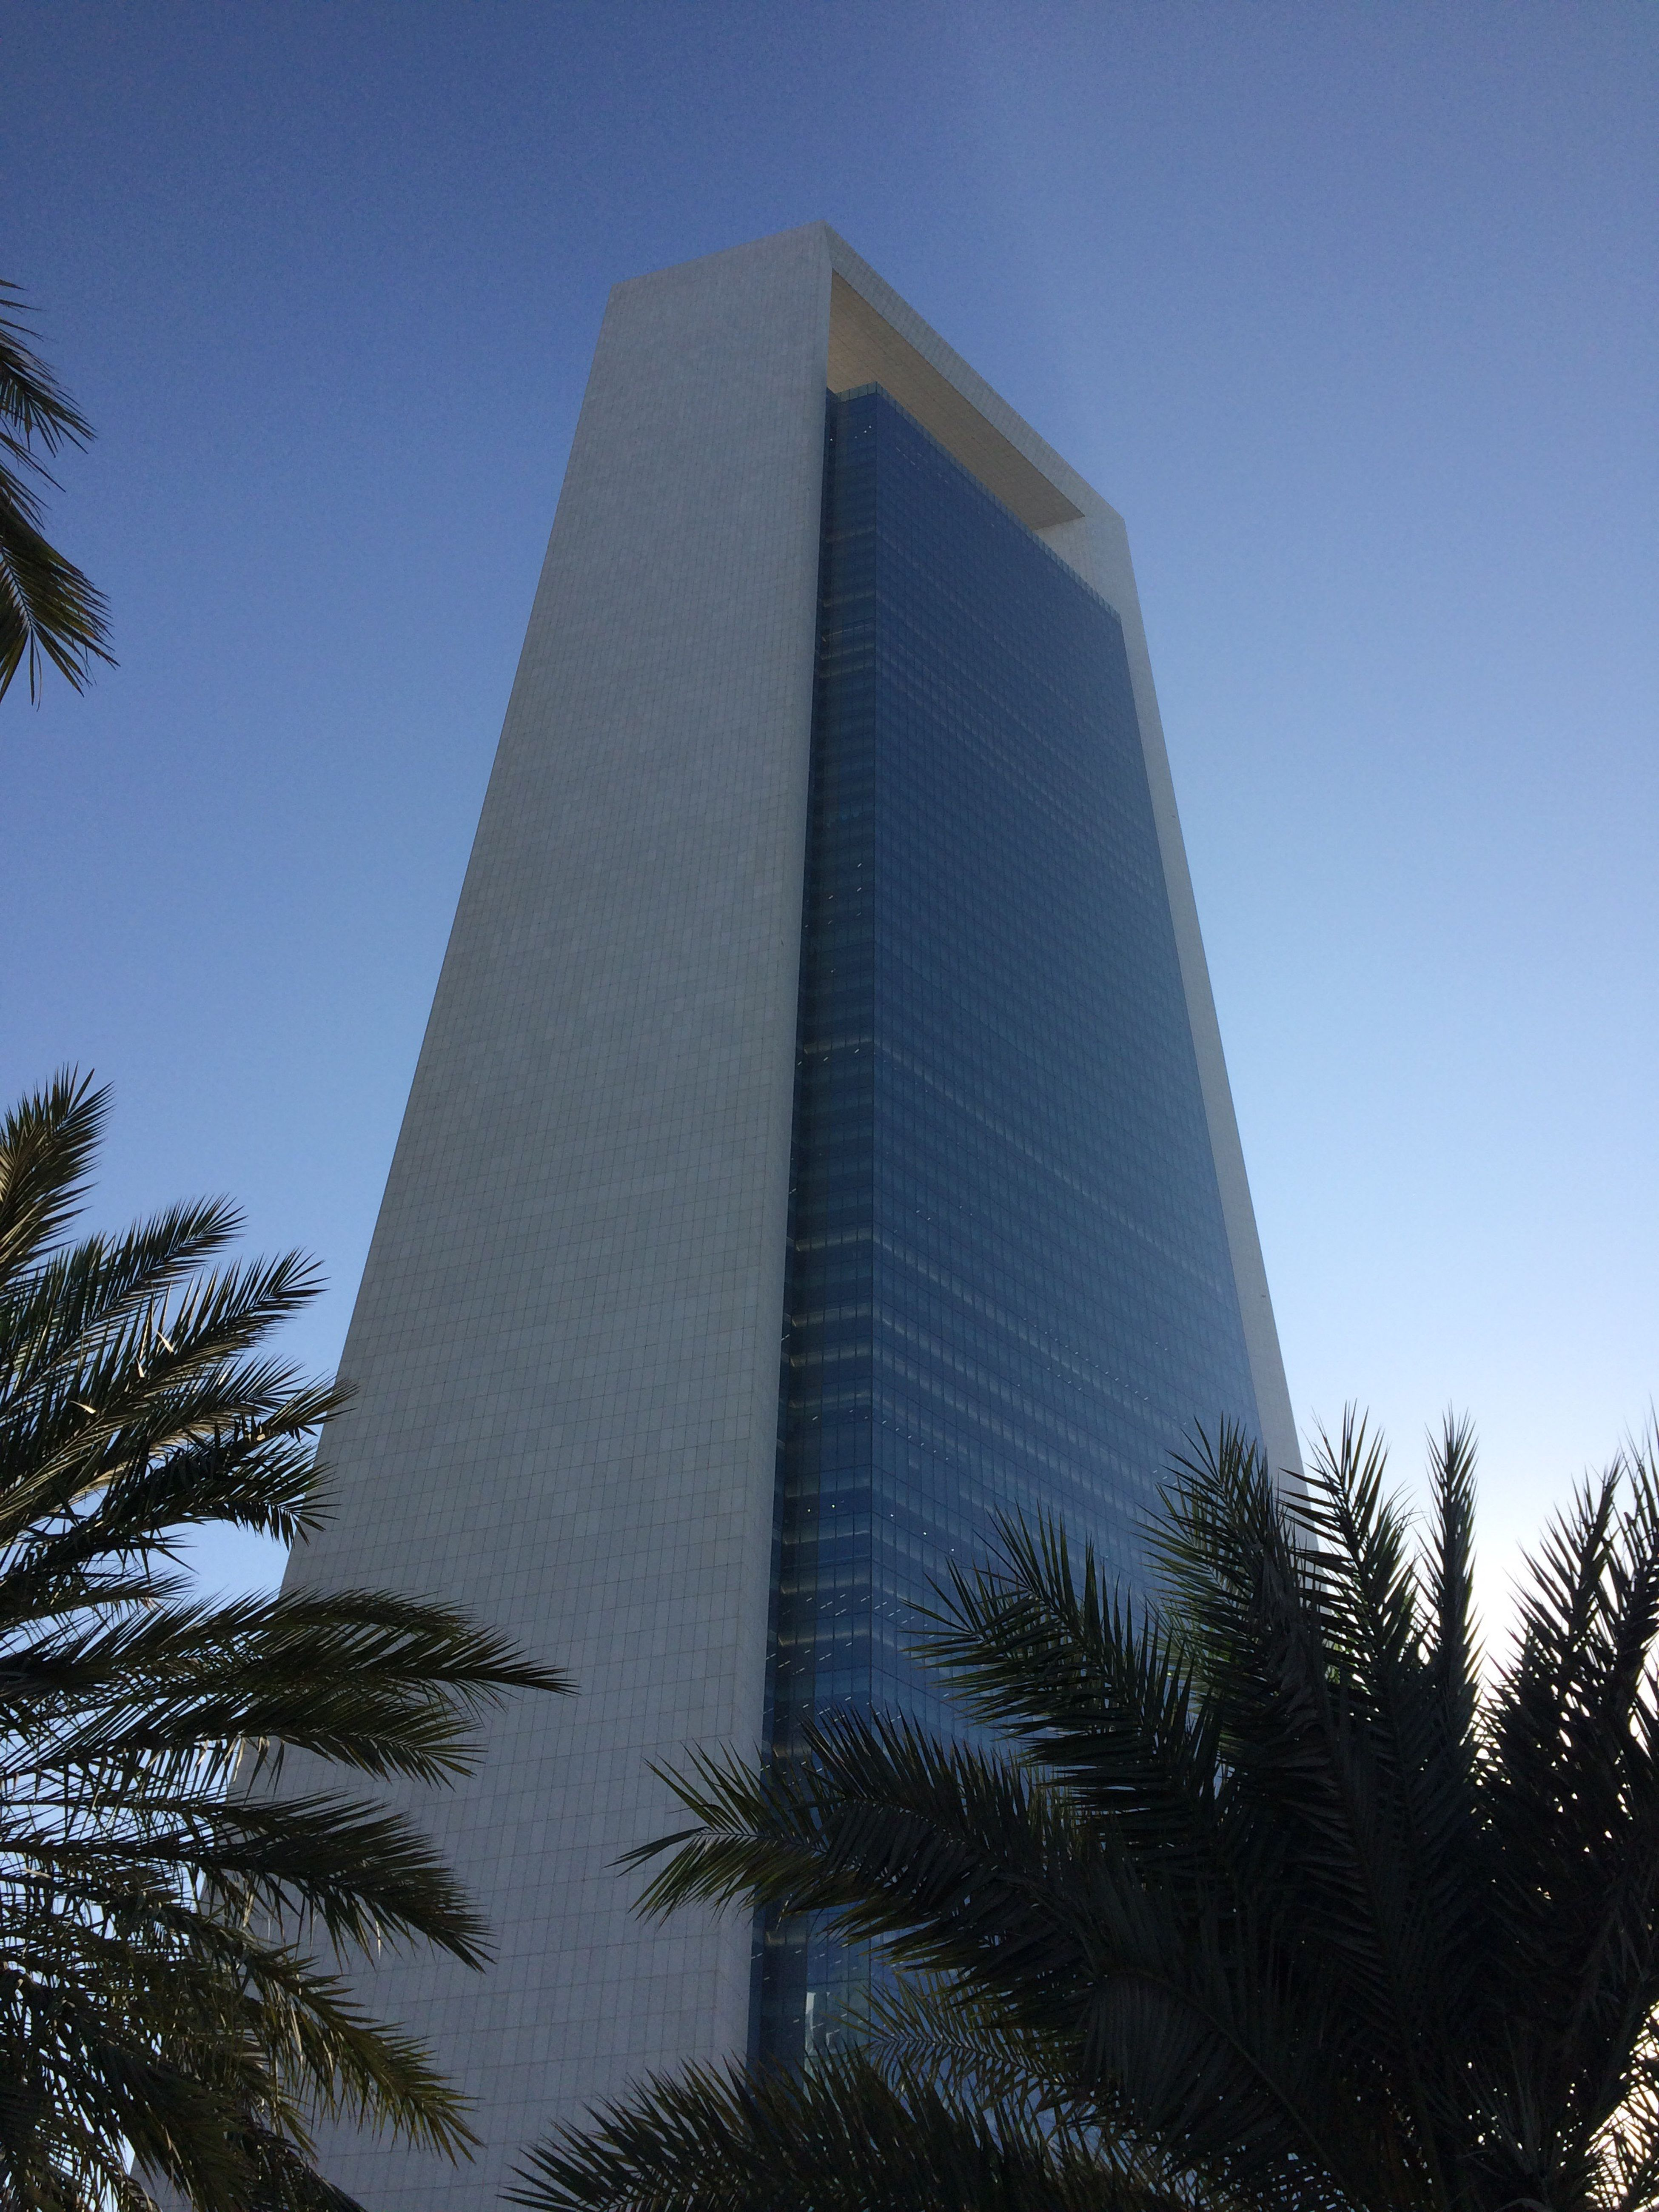 Adnoc Adnoctower